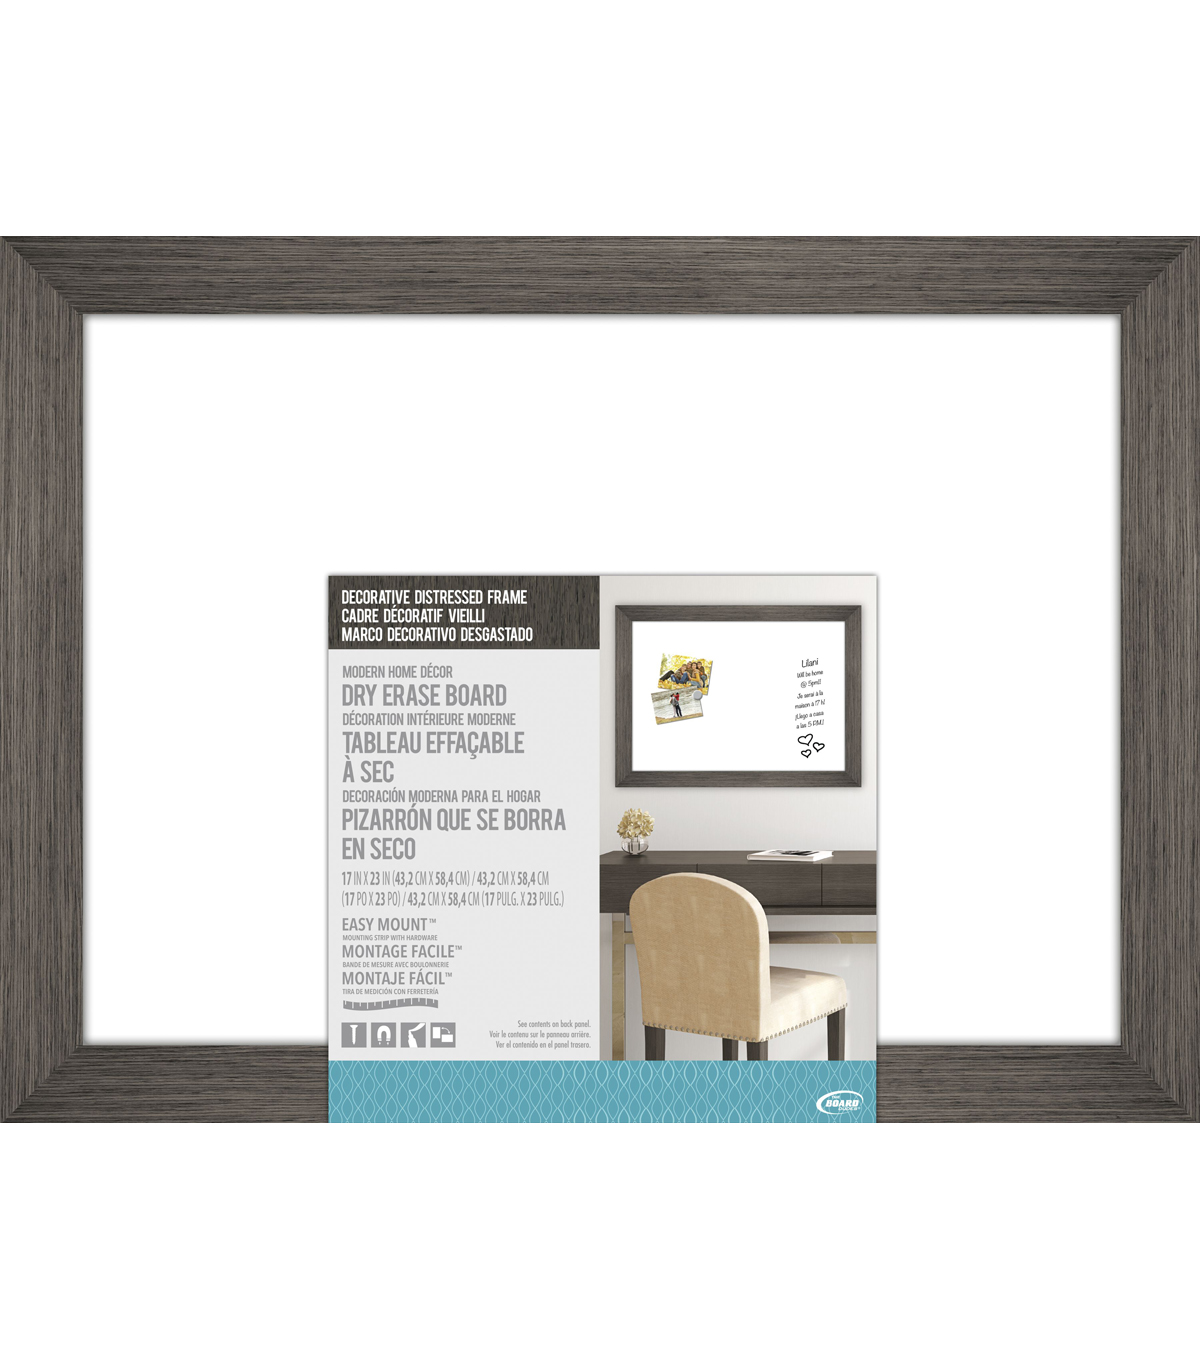 The Board Dudes Decorative Distressed Wood Frame Dry Erase